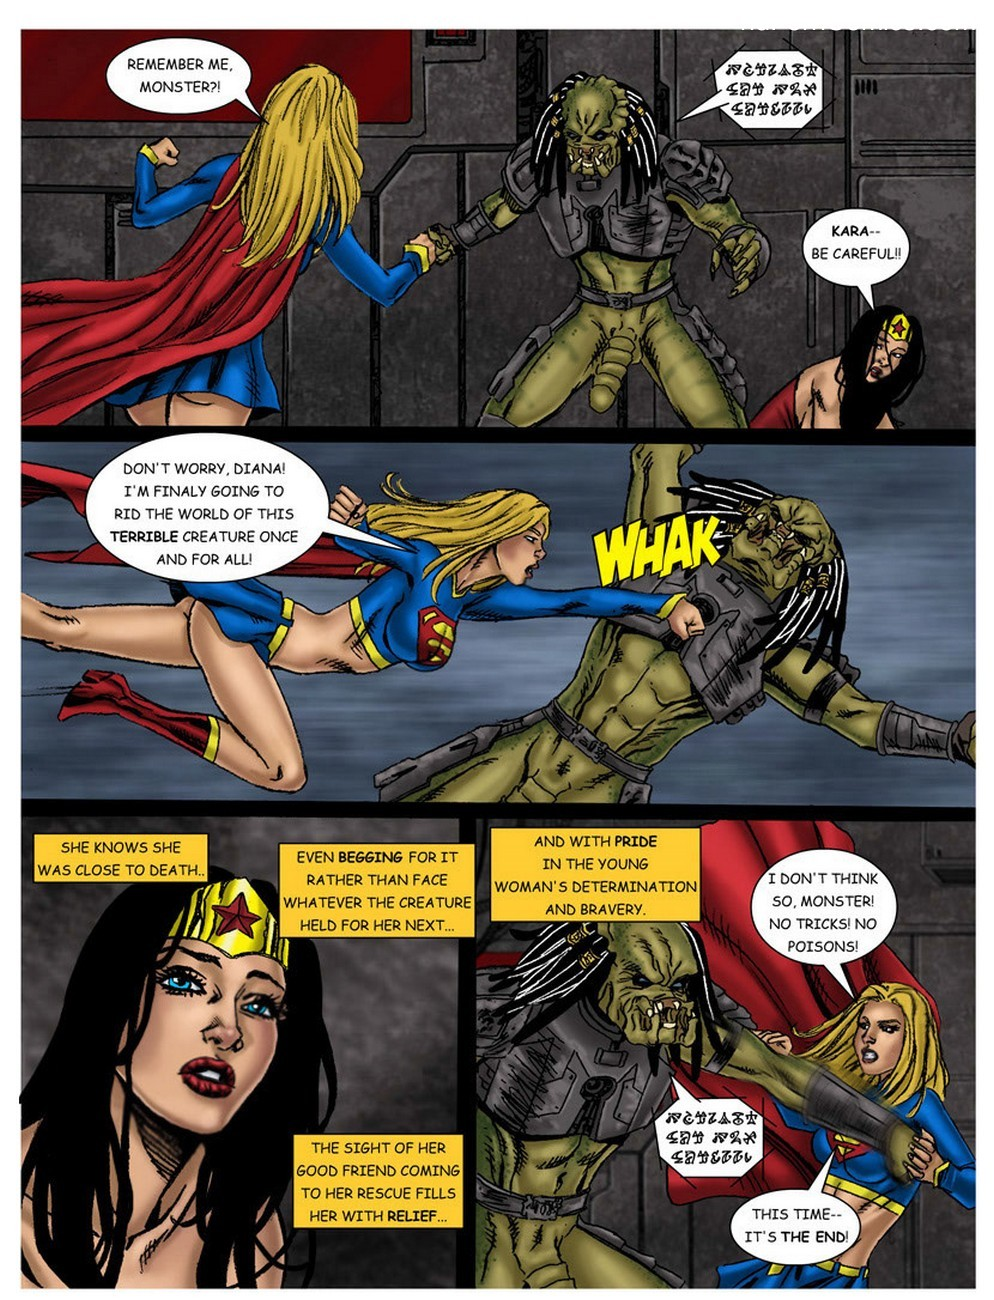 Wonder Woman - In The Clutches Of The Predator 3 23 free sex comic